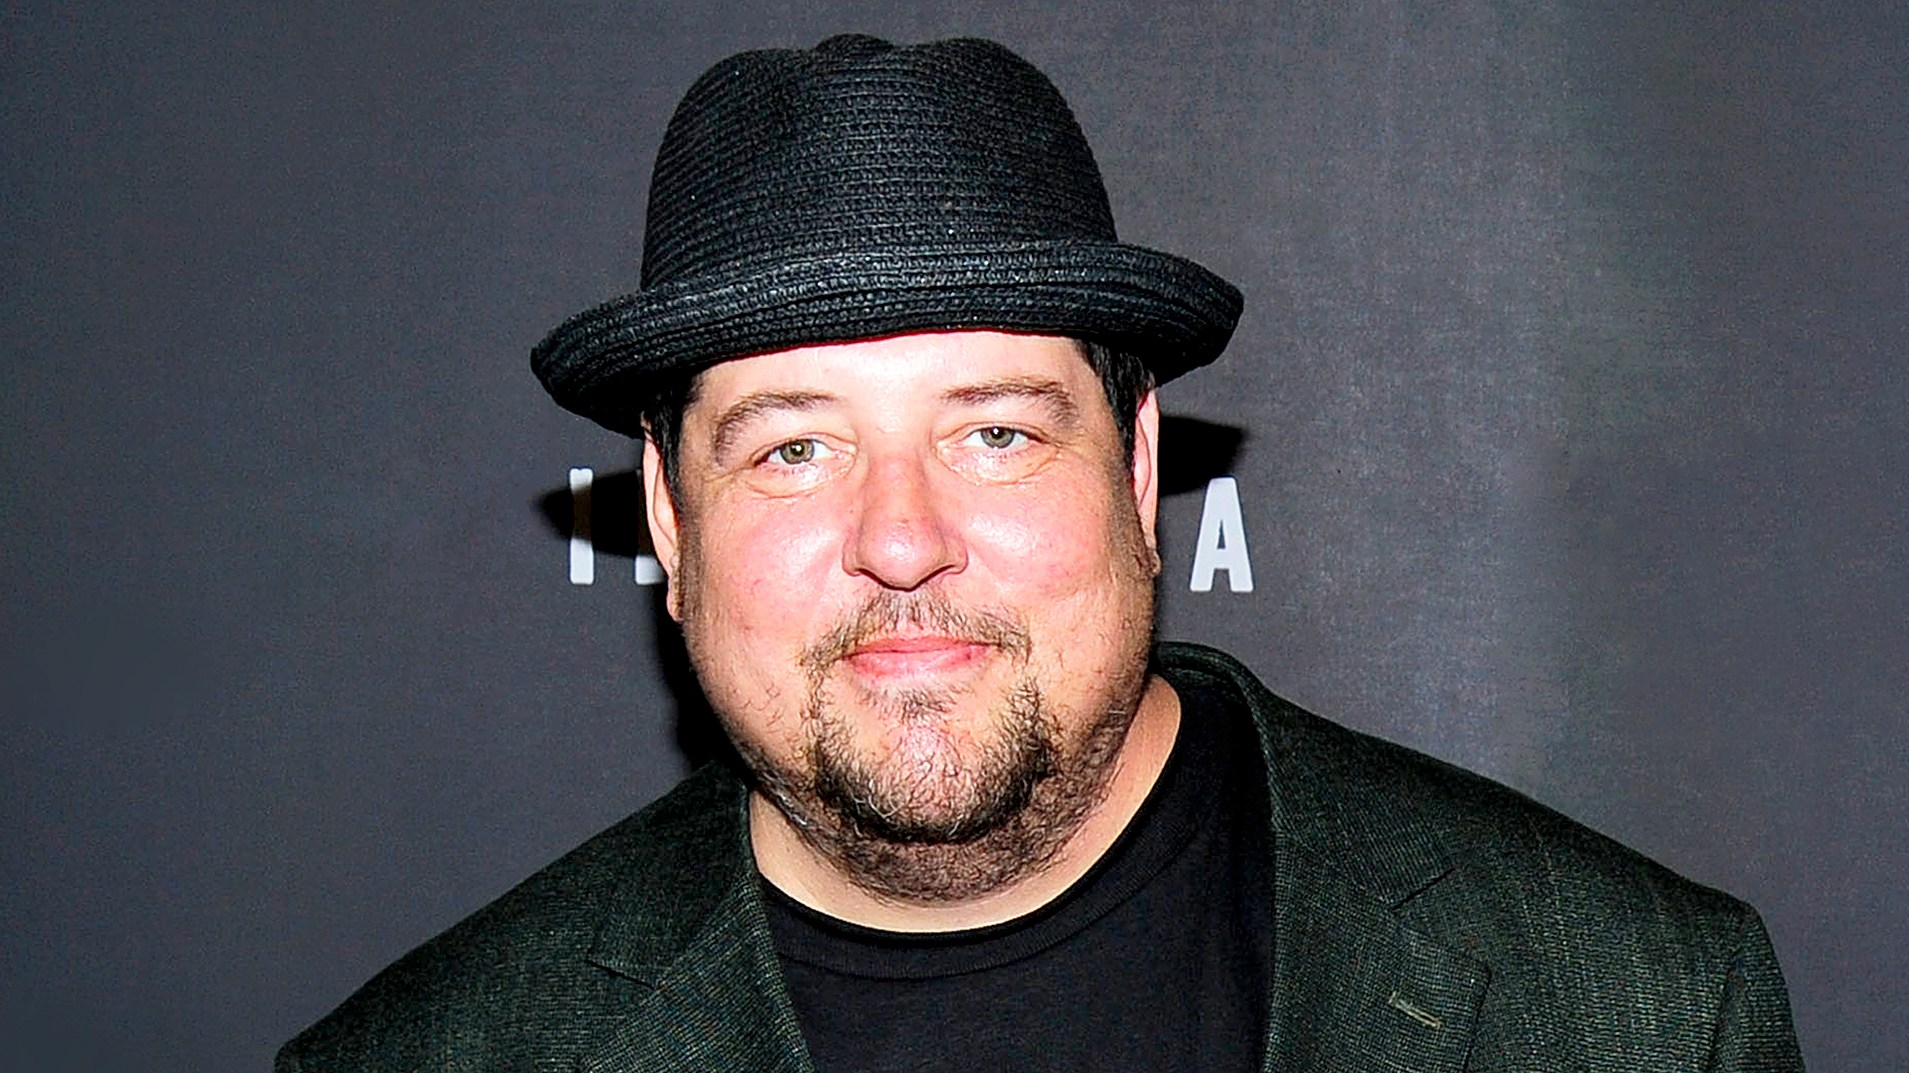 Joey Boots